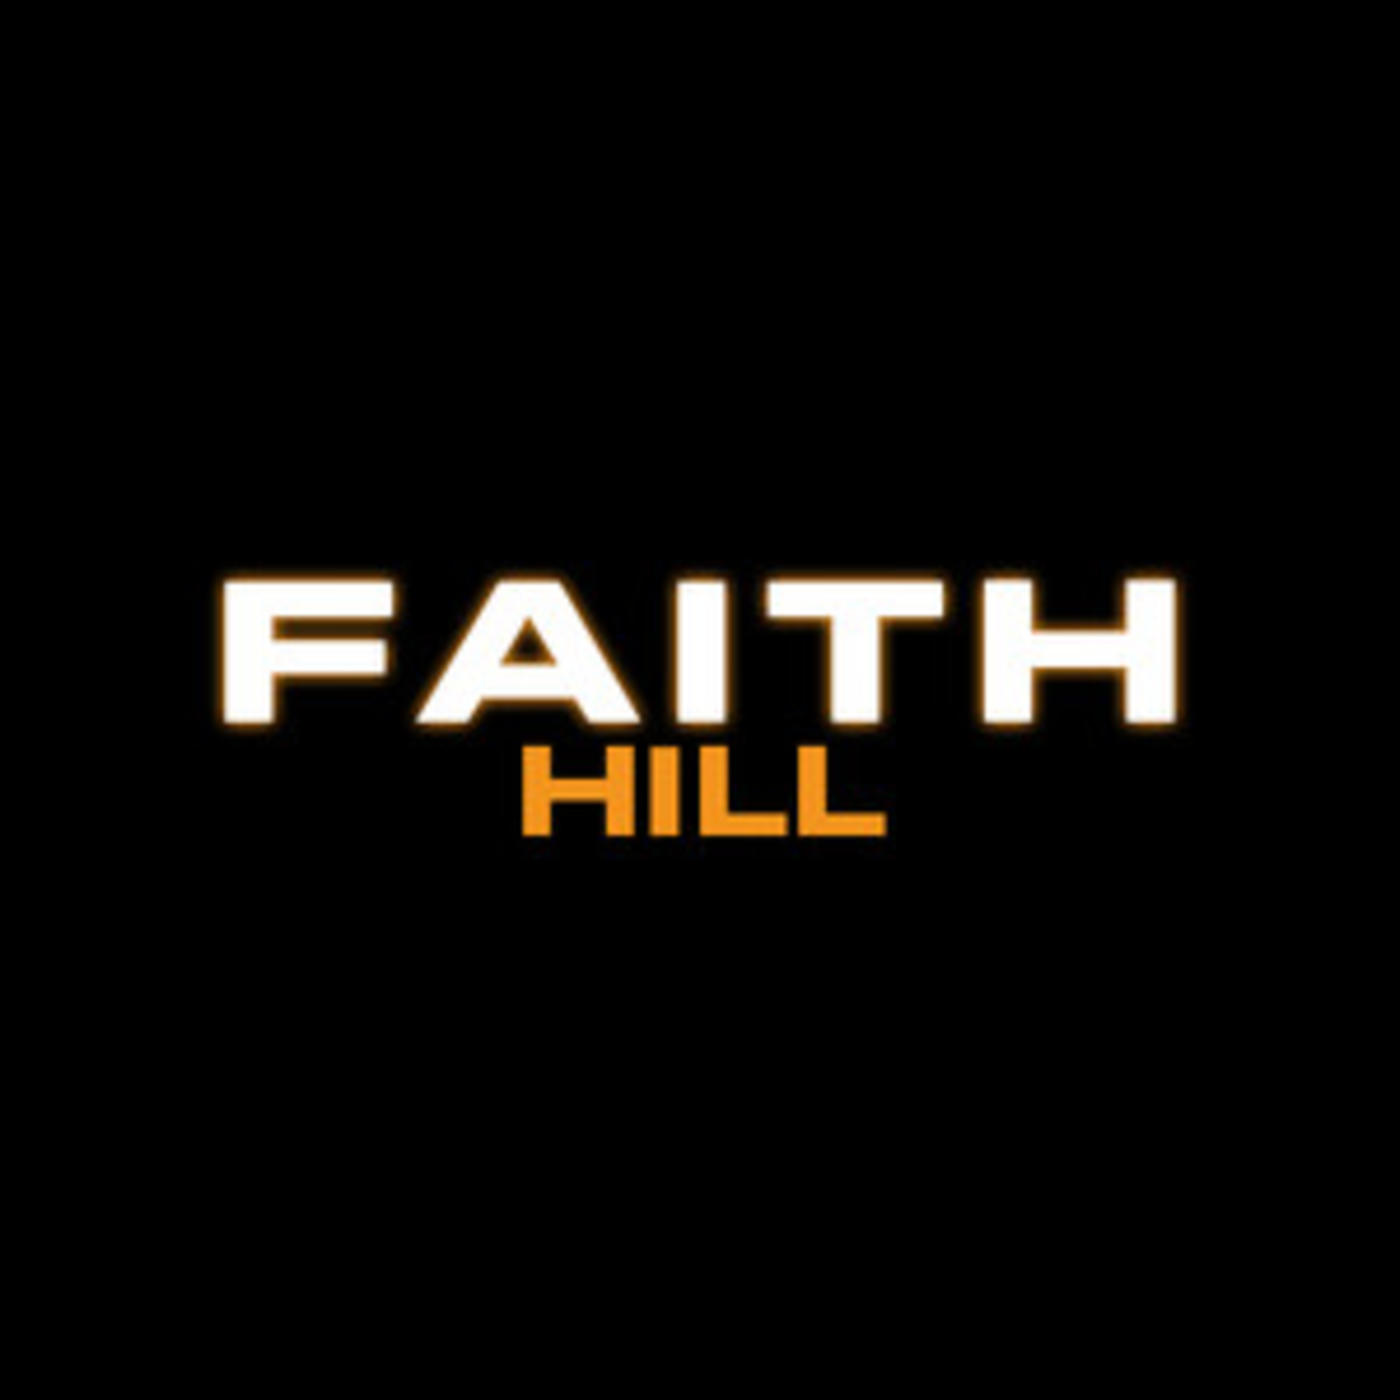 Official Faith Hill playlist - Breathe, This Kiss, The Way You Love me, There You'll Be, Cry